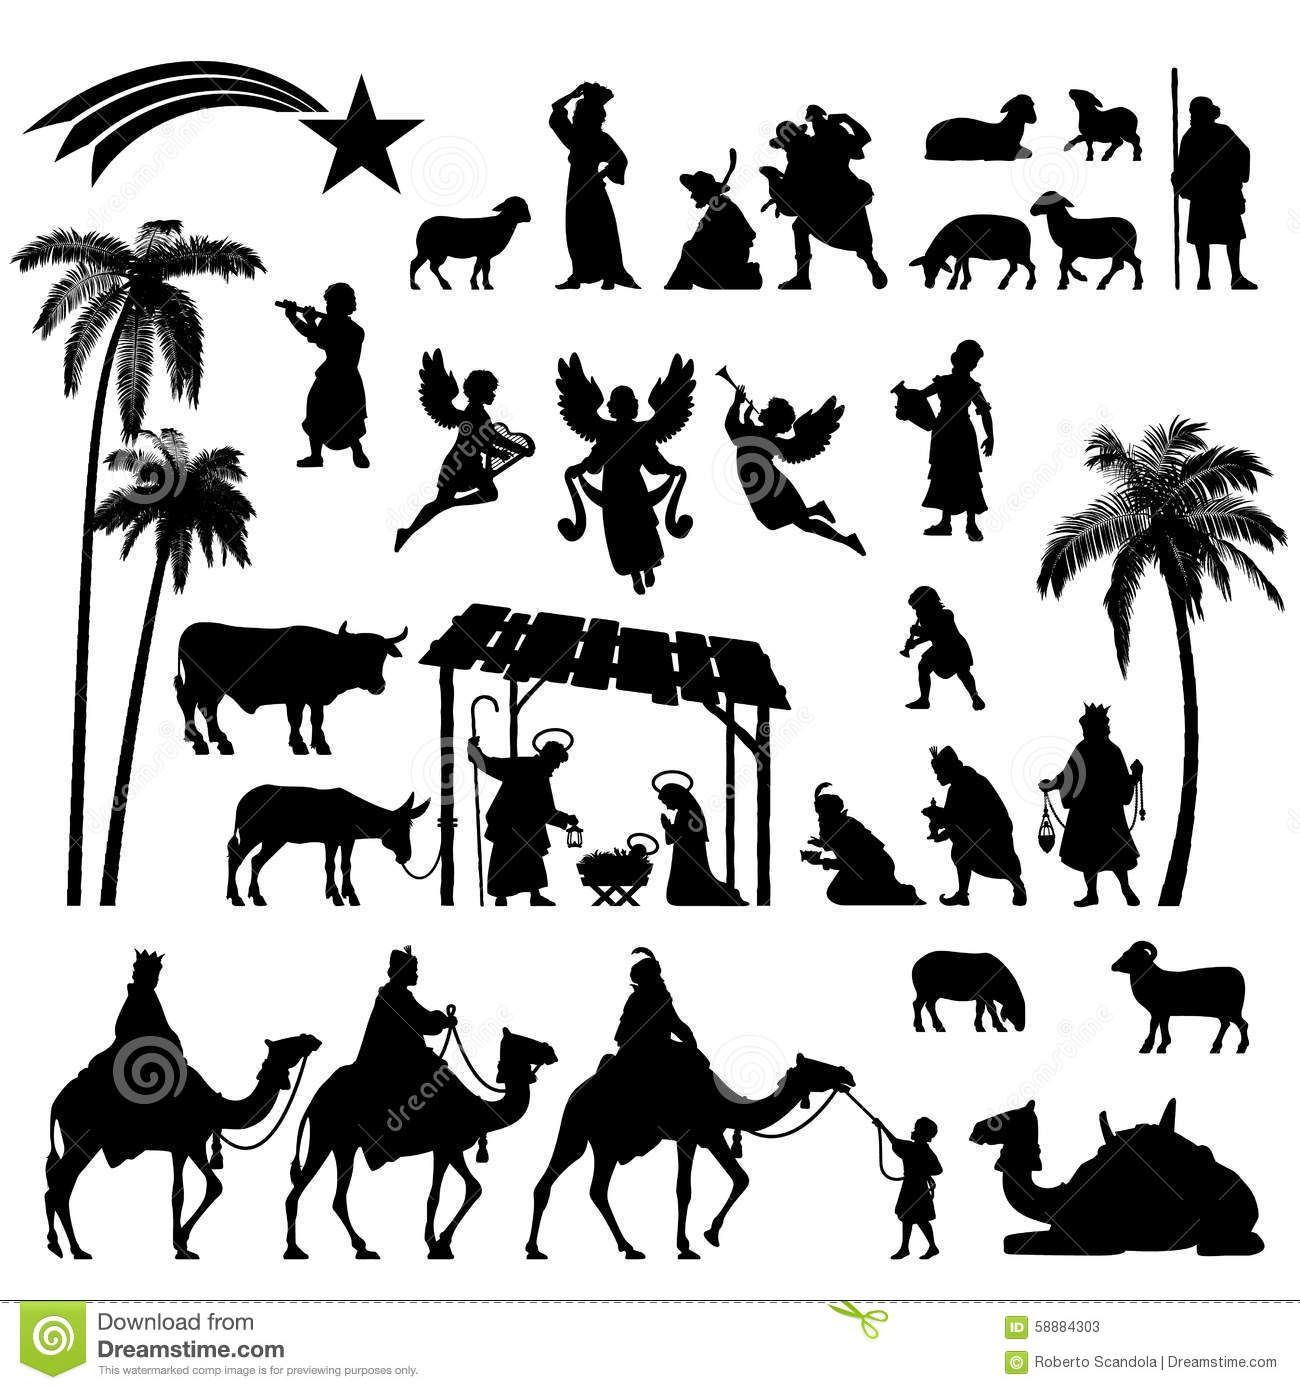 Bethlehem Silhouette Patterns Download